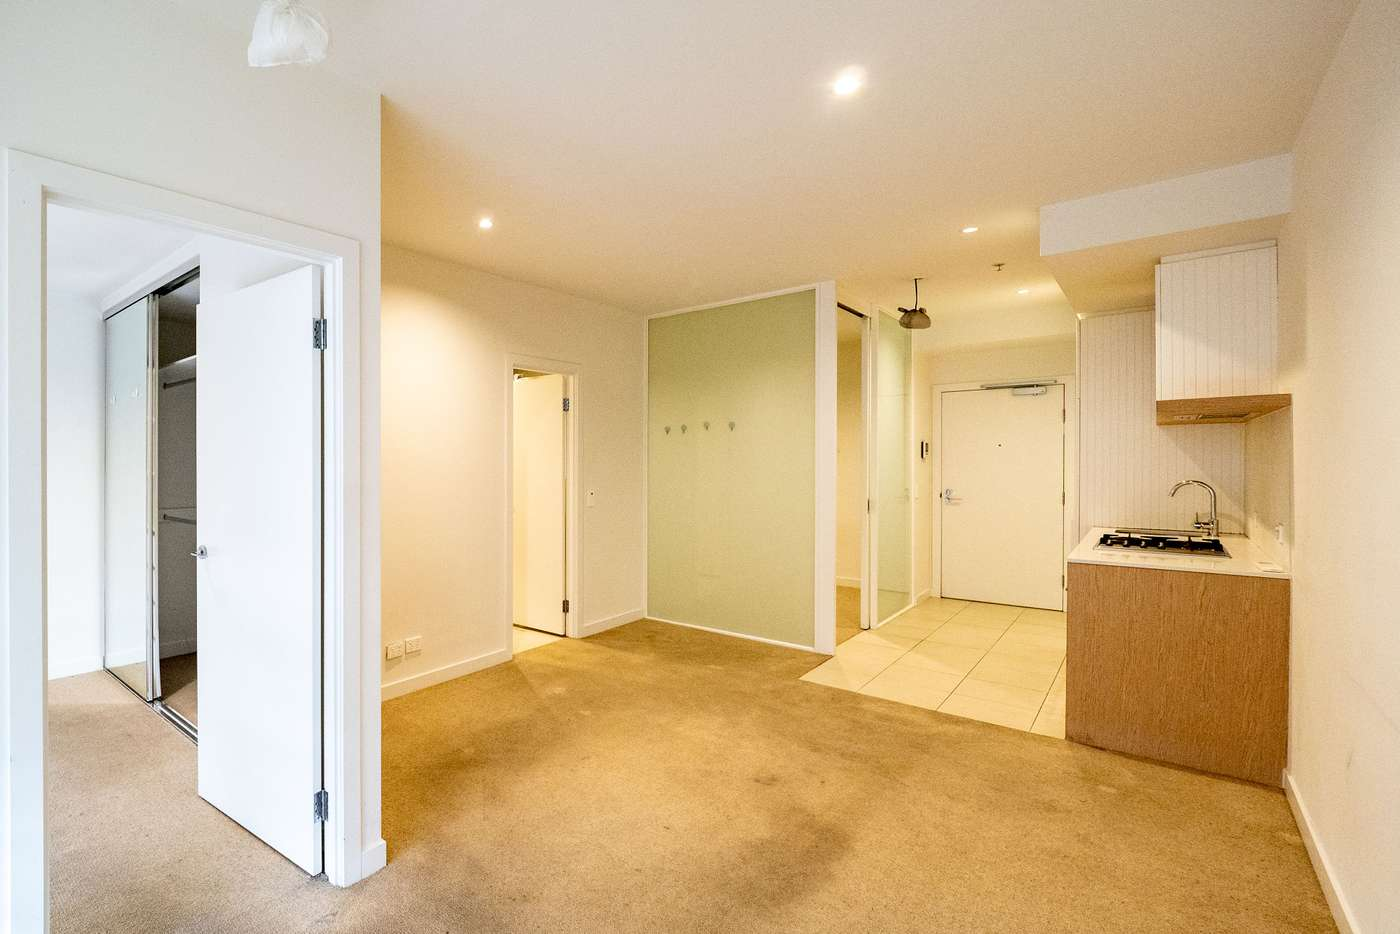 Sixth view of Homely apartment listing, 107/15 Bond Street, Caulfield VIC 3162